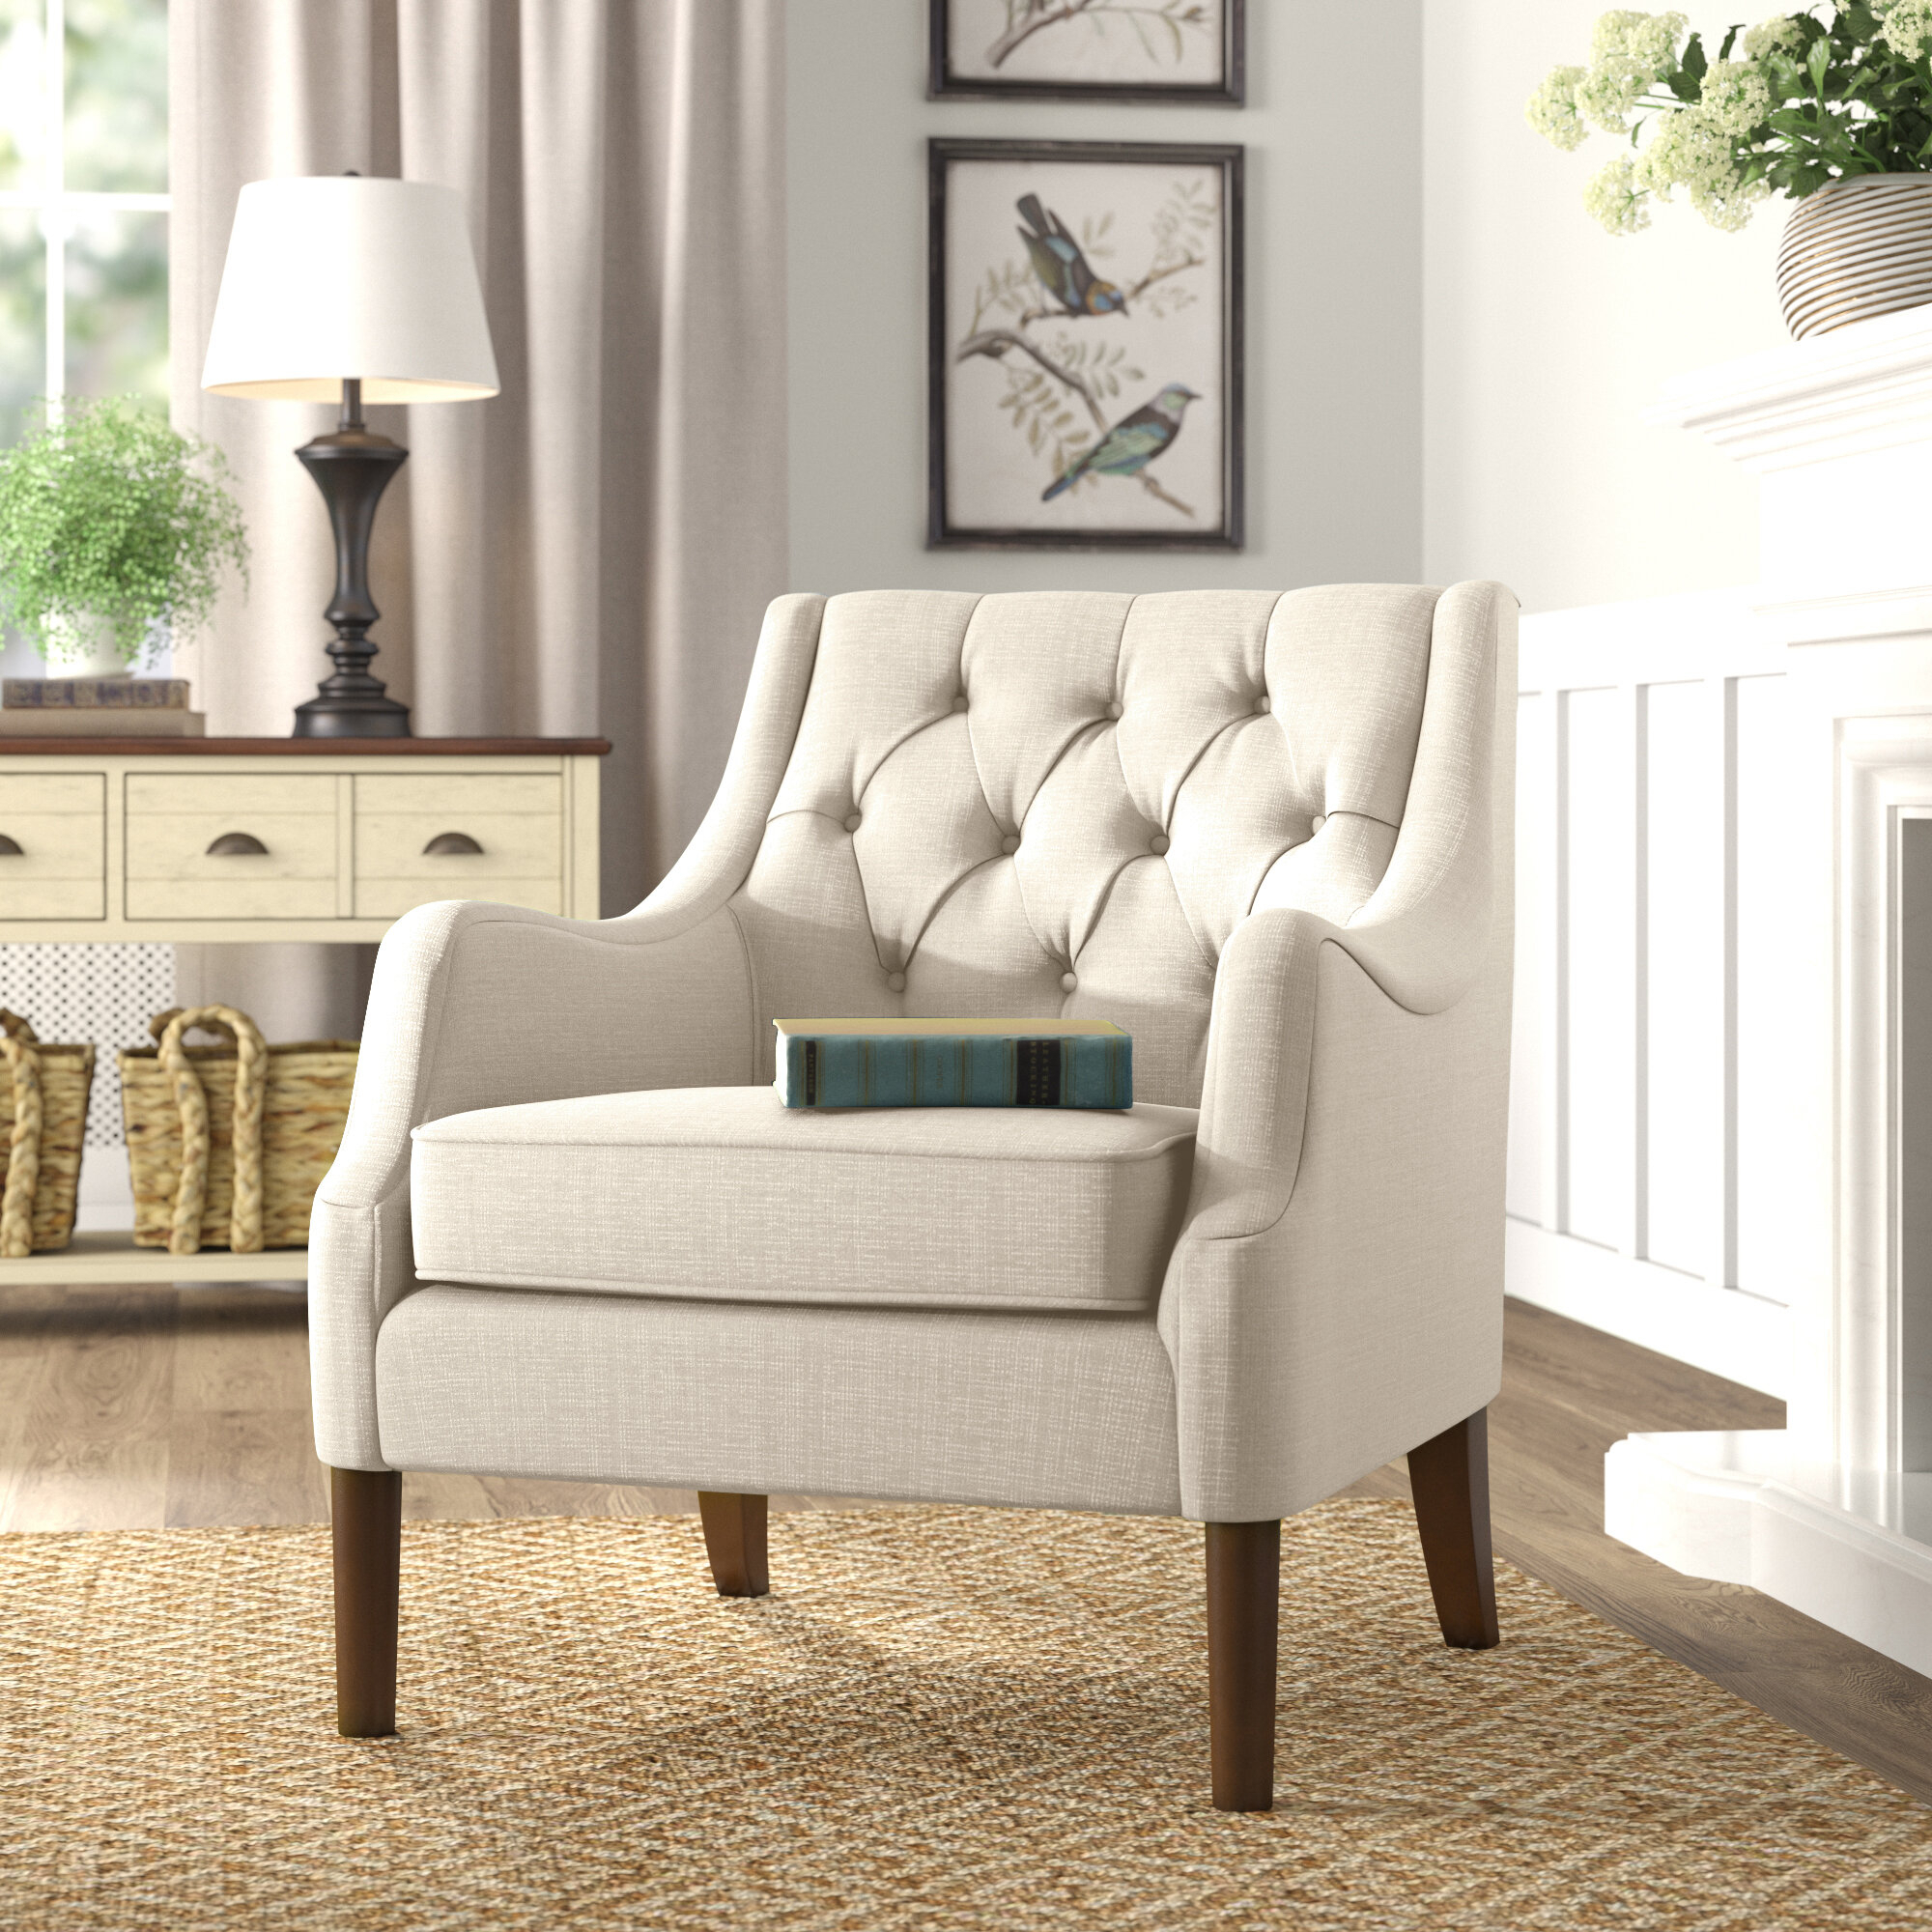 Farmhouse & Rustic Tufted Accent Chairs | Birch Lane For Cohutta Armchairs (View 12 of 15)